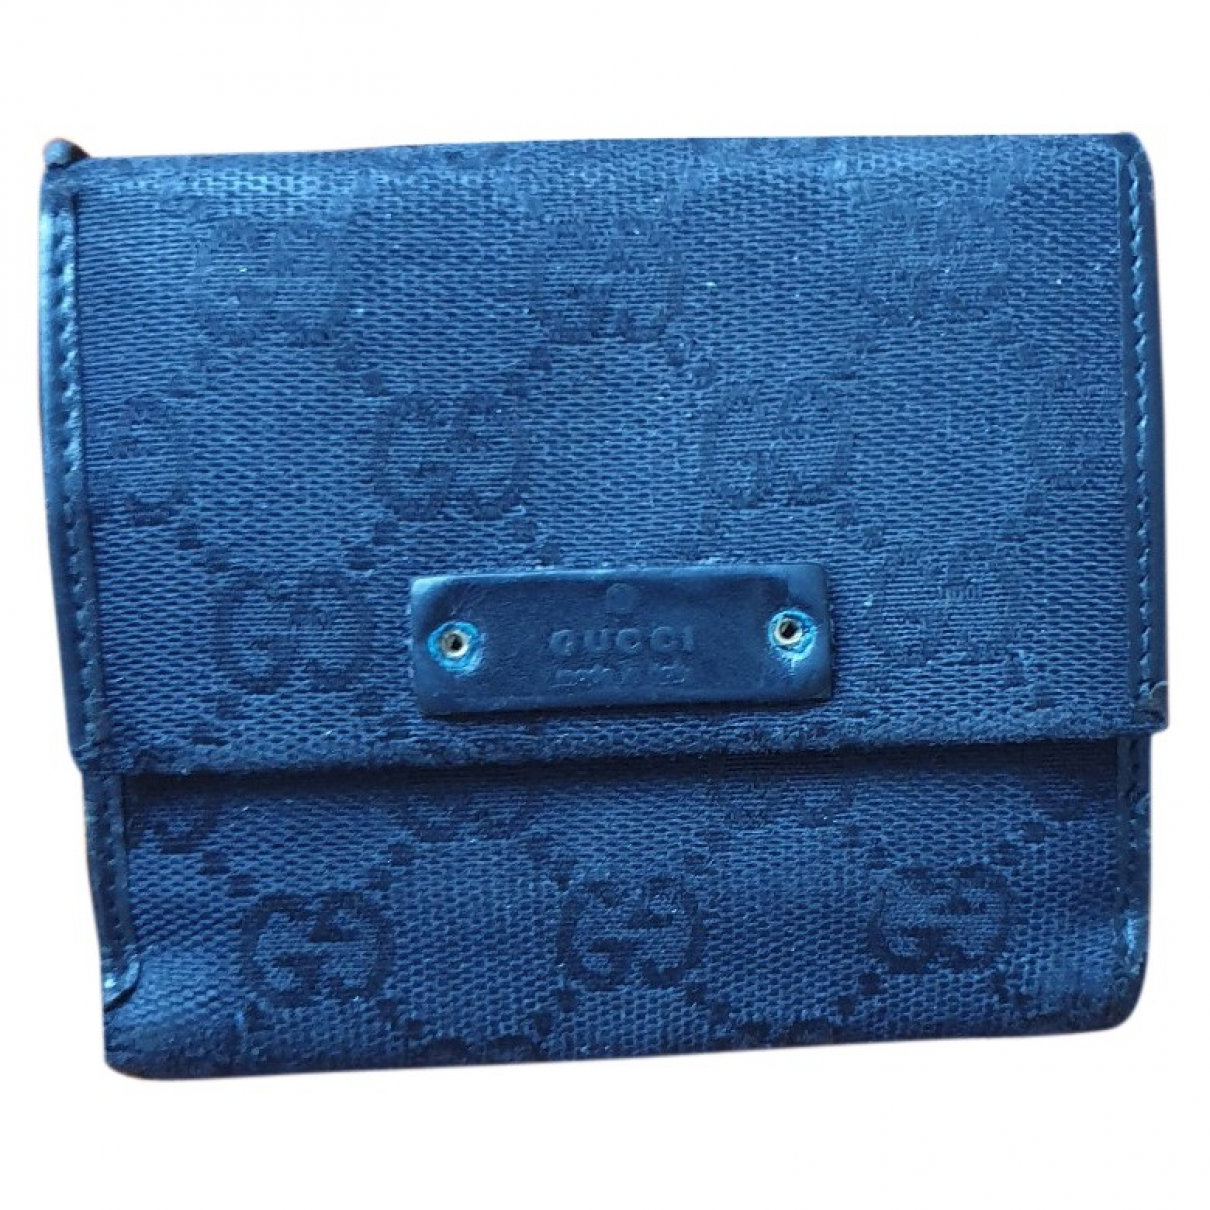 Gucci \N Black Cloth wallet for Women \N